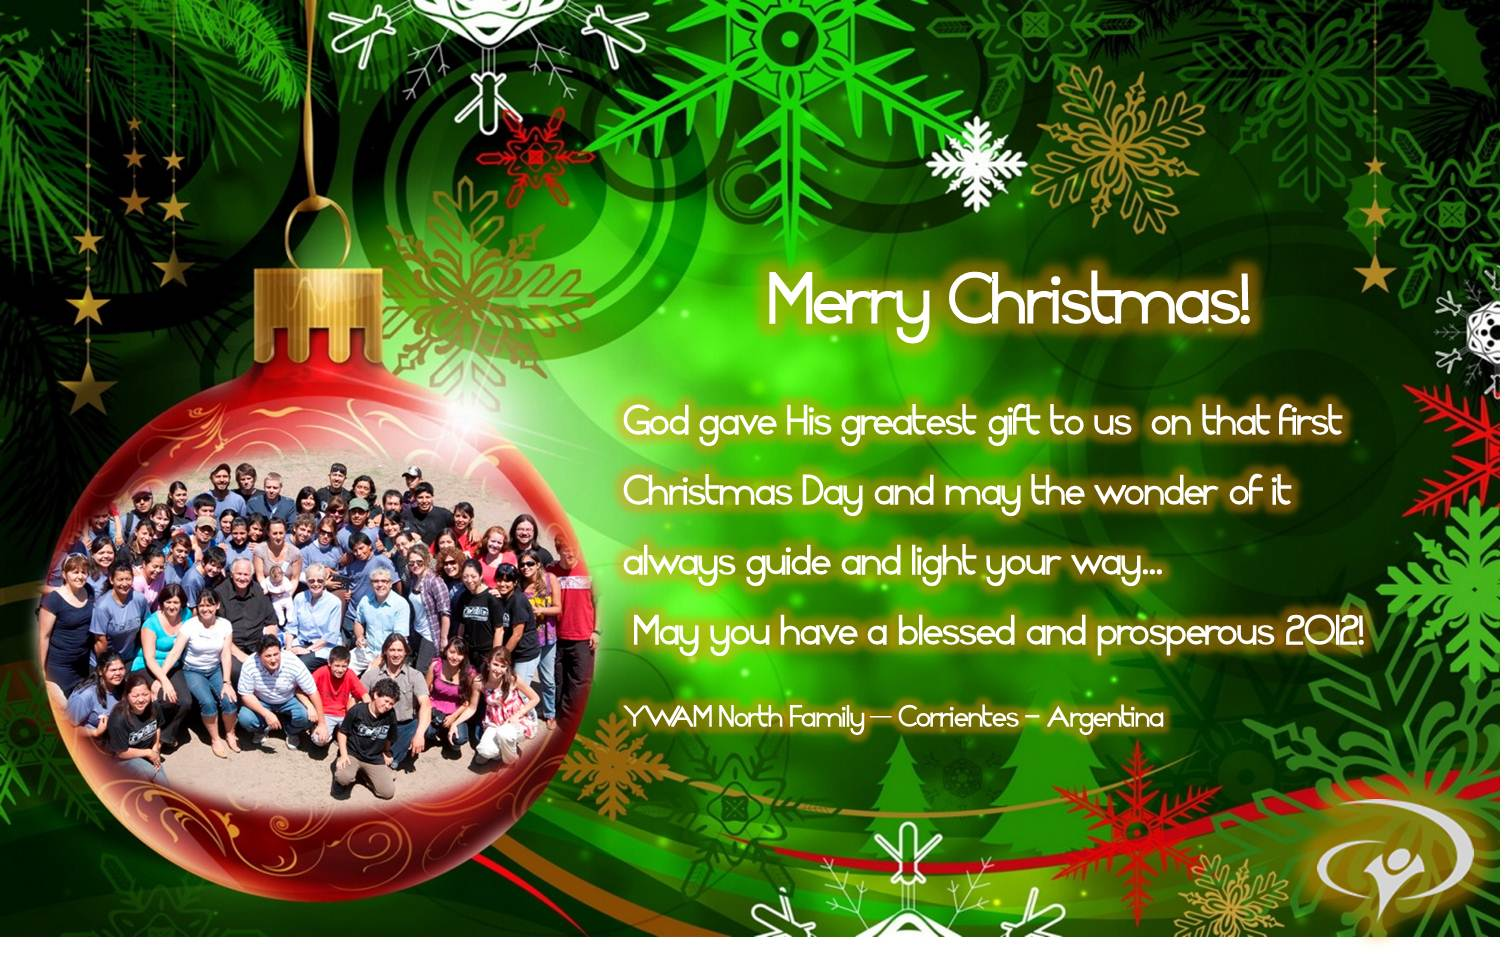 Christmas greetings pictures time to celebrate christmas christmas greeting messages or pictures m4hsunfo